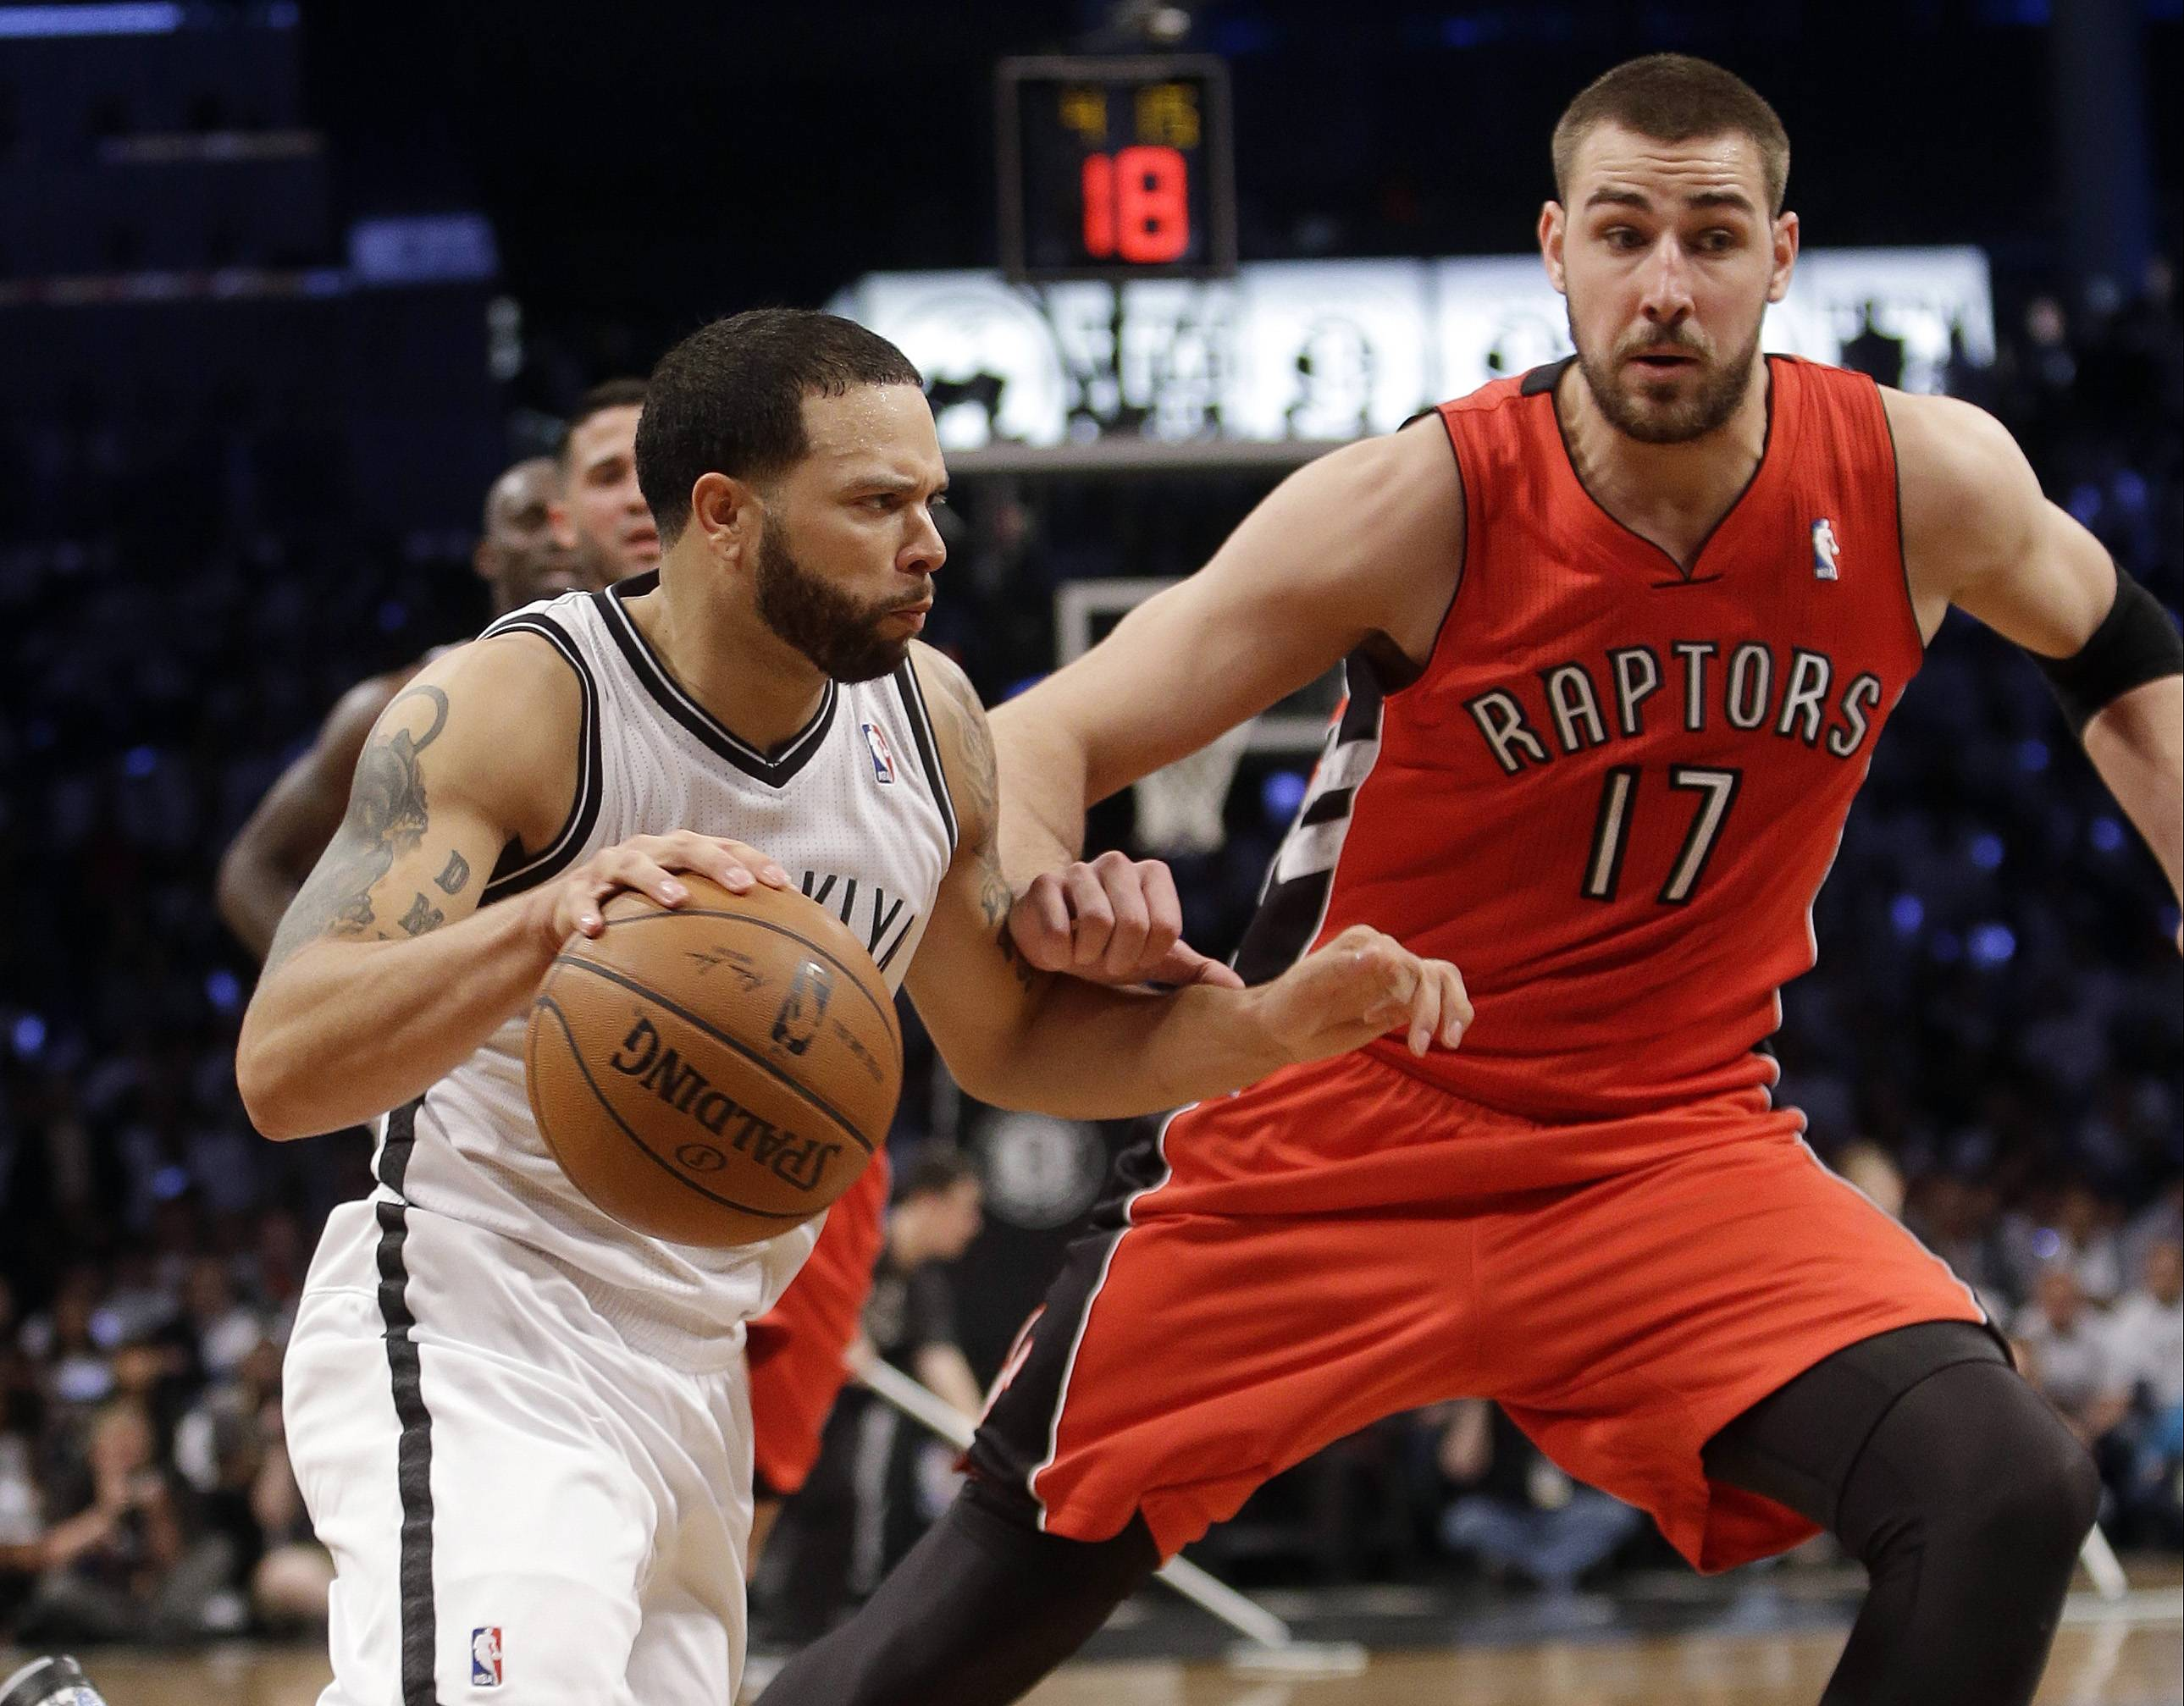 Brooklyn Nets' Deron Williams drives past Toronto Raptors' Jonas Valanciunas, right, during the second half of Game 6 of the opening-round NBA basketball playoff series Friday, May 2, 2014, in New York. The Nets won the game 97-83.